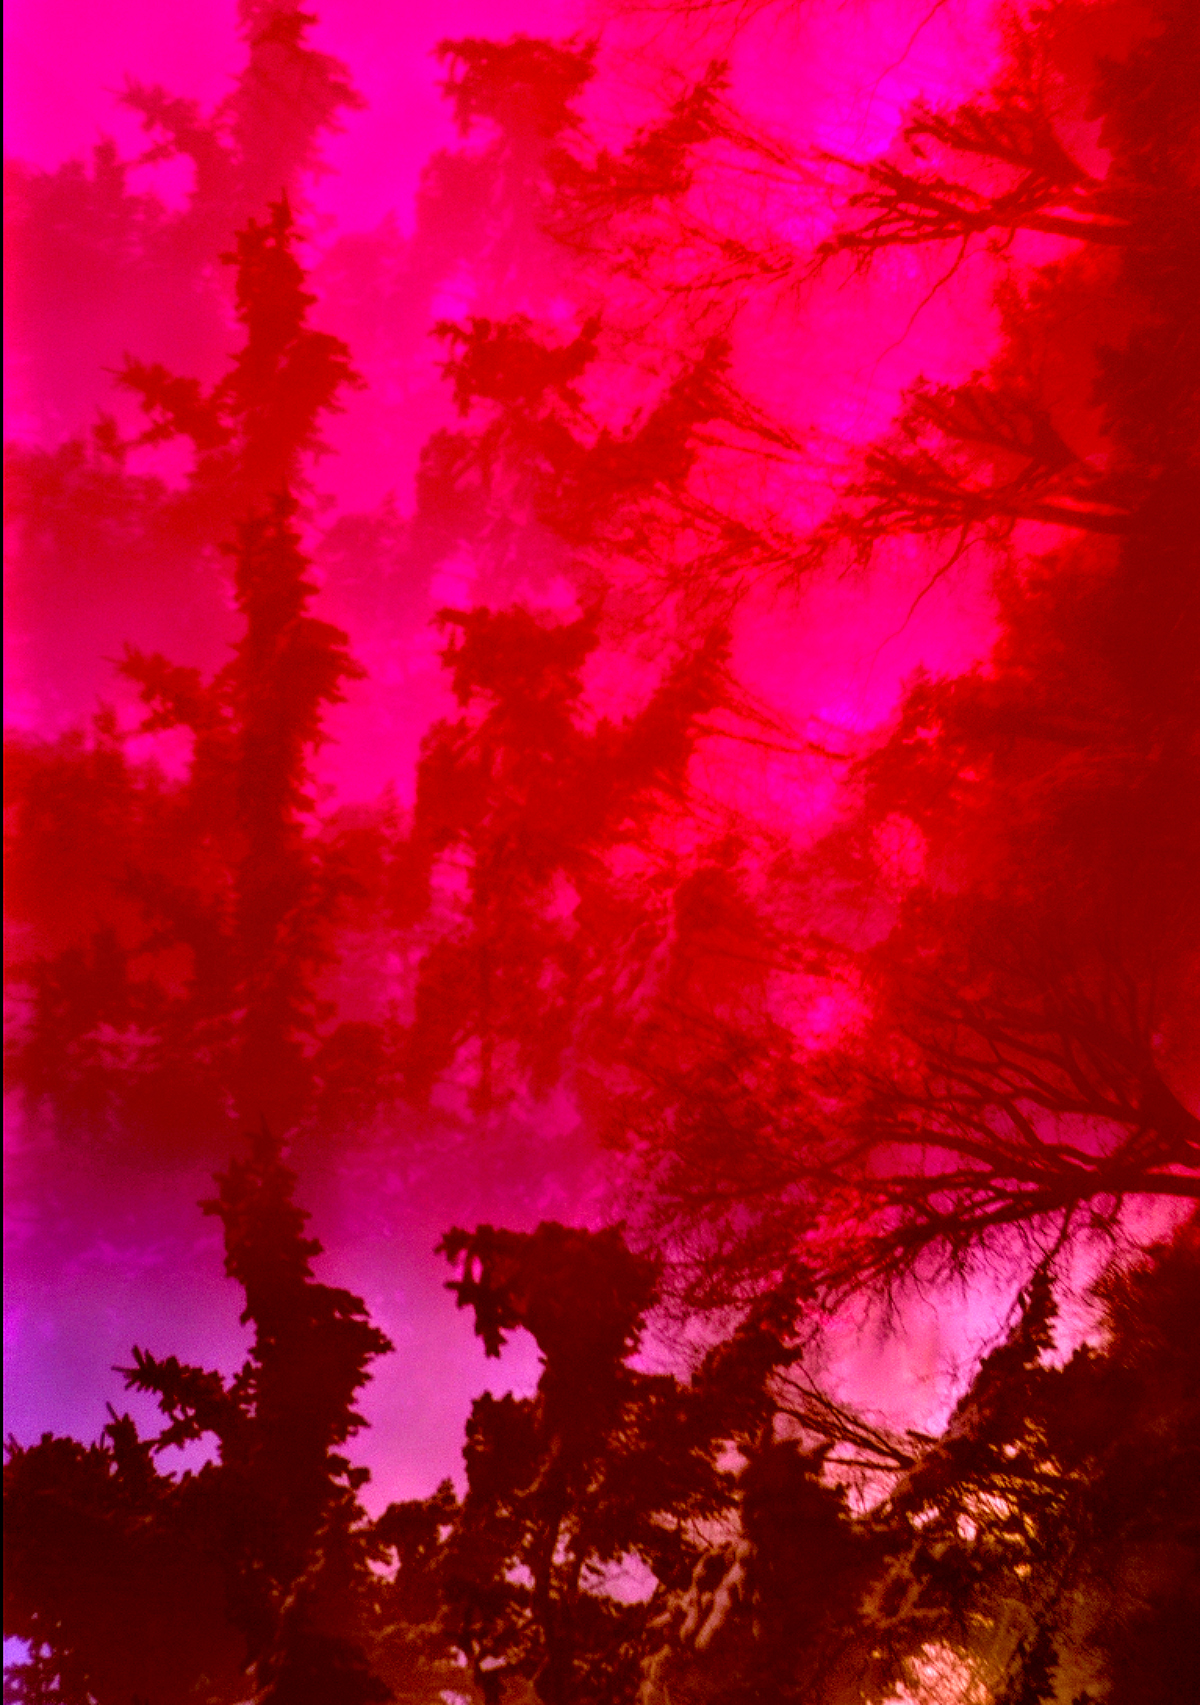 Layers of an image of trees juxtaposed atop each other against a hot pink background.